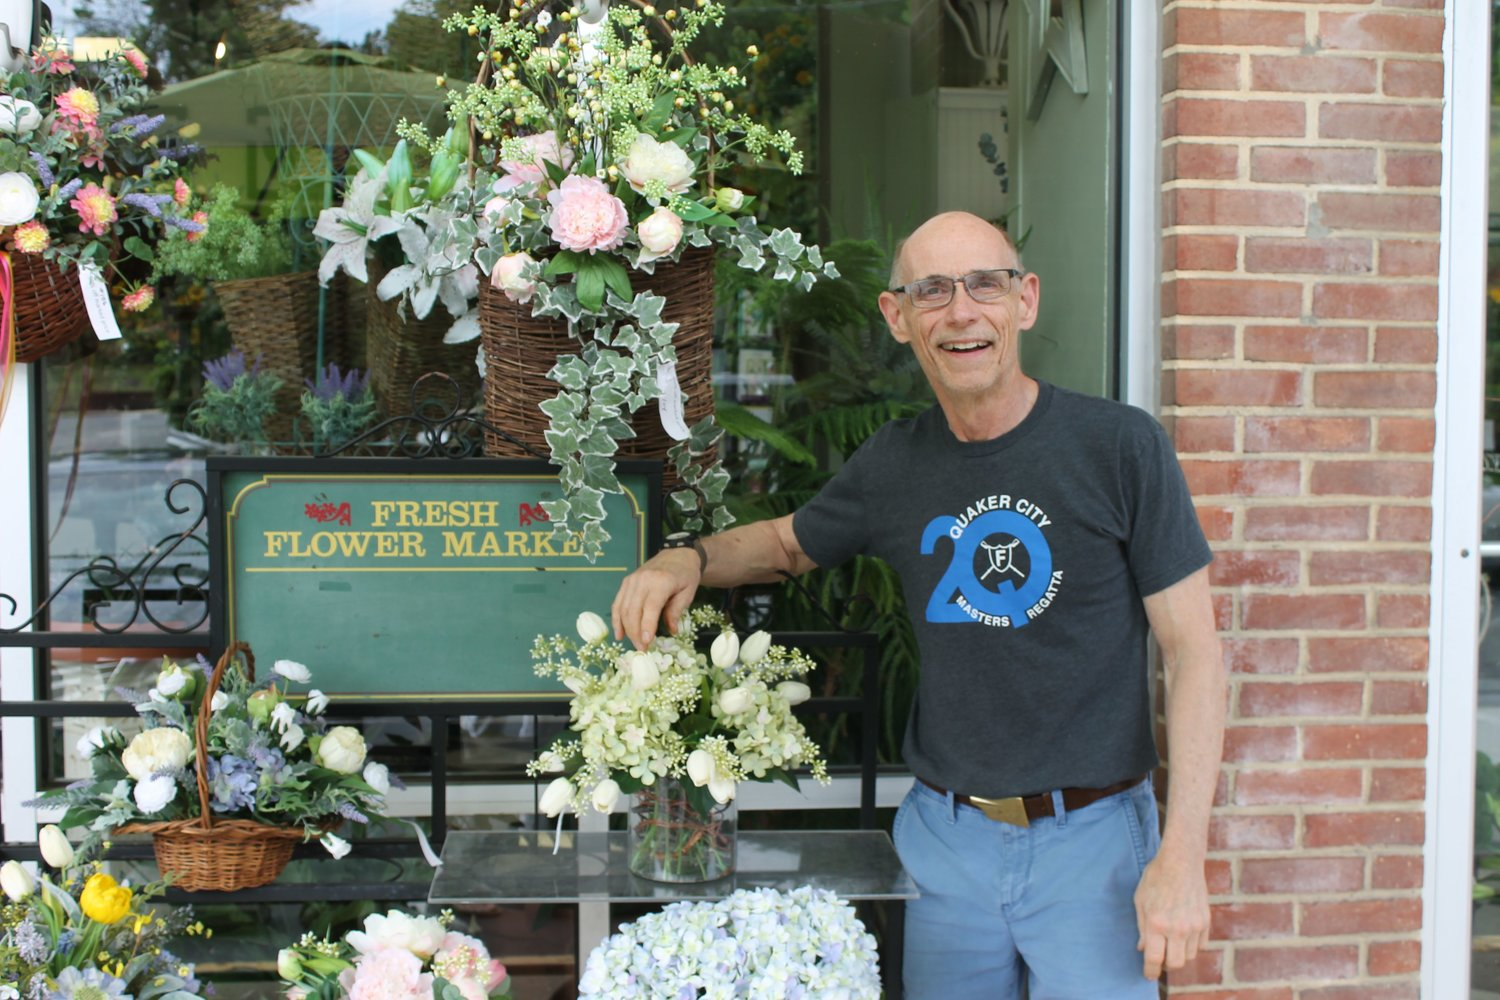 On behalf of Severna Flowers & Gifts, owner Bill Dyott accepted the award for Best Florist.